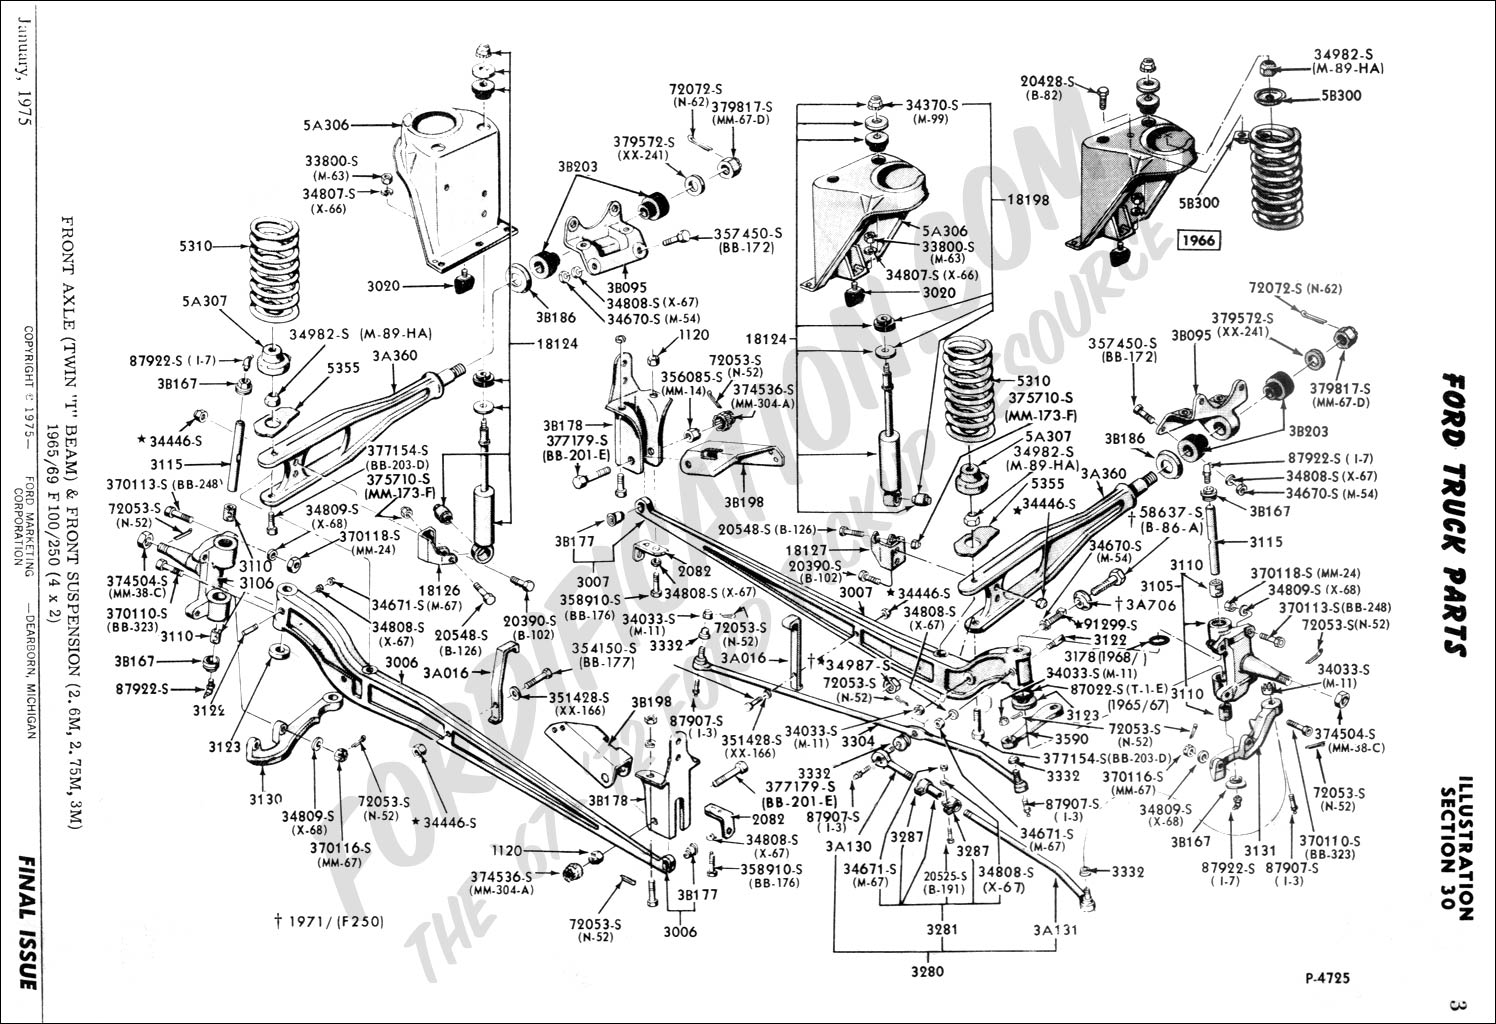 1061623 Bent I Beams On 70swb on 1977 ford f 150 fuse box diagram